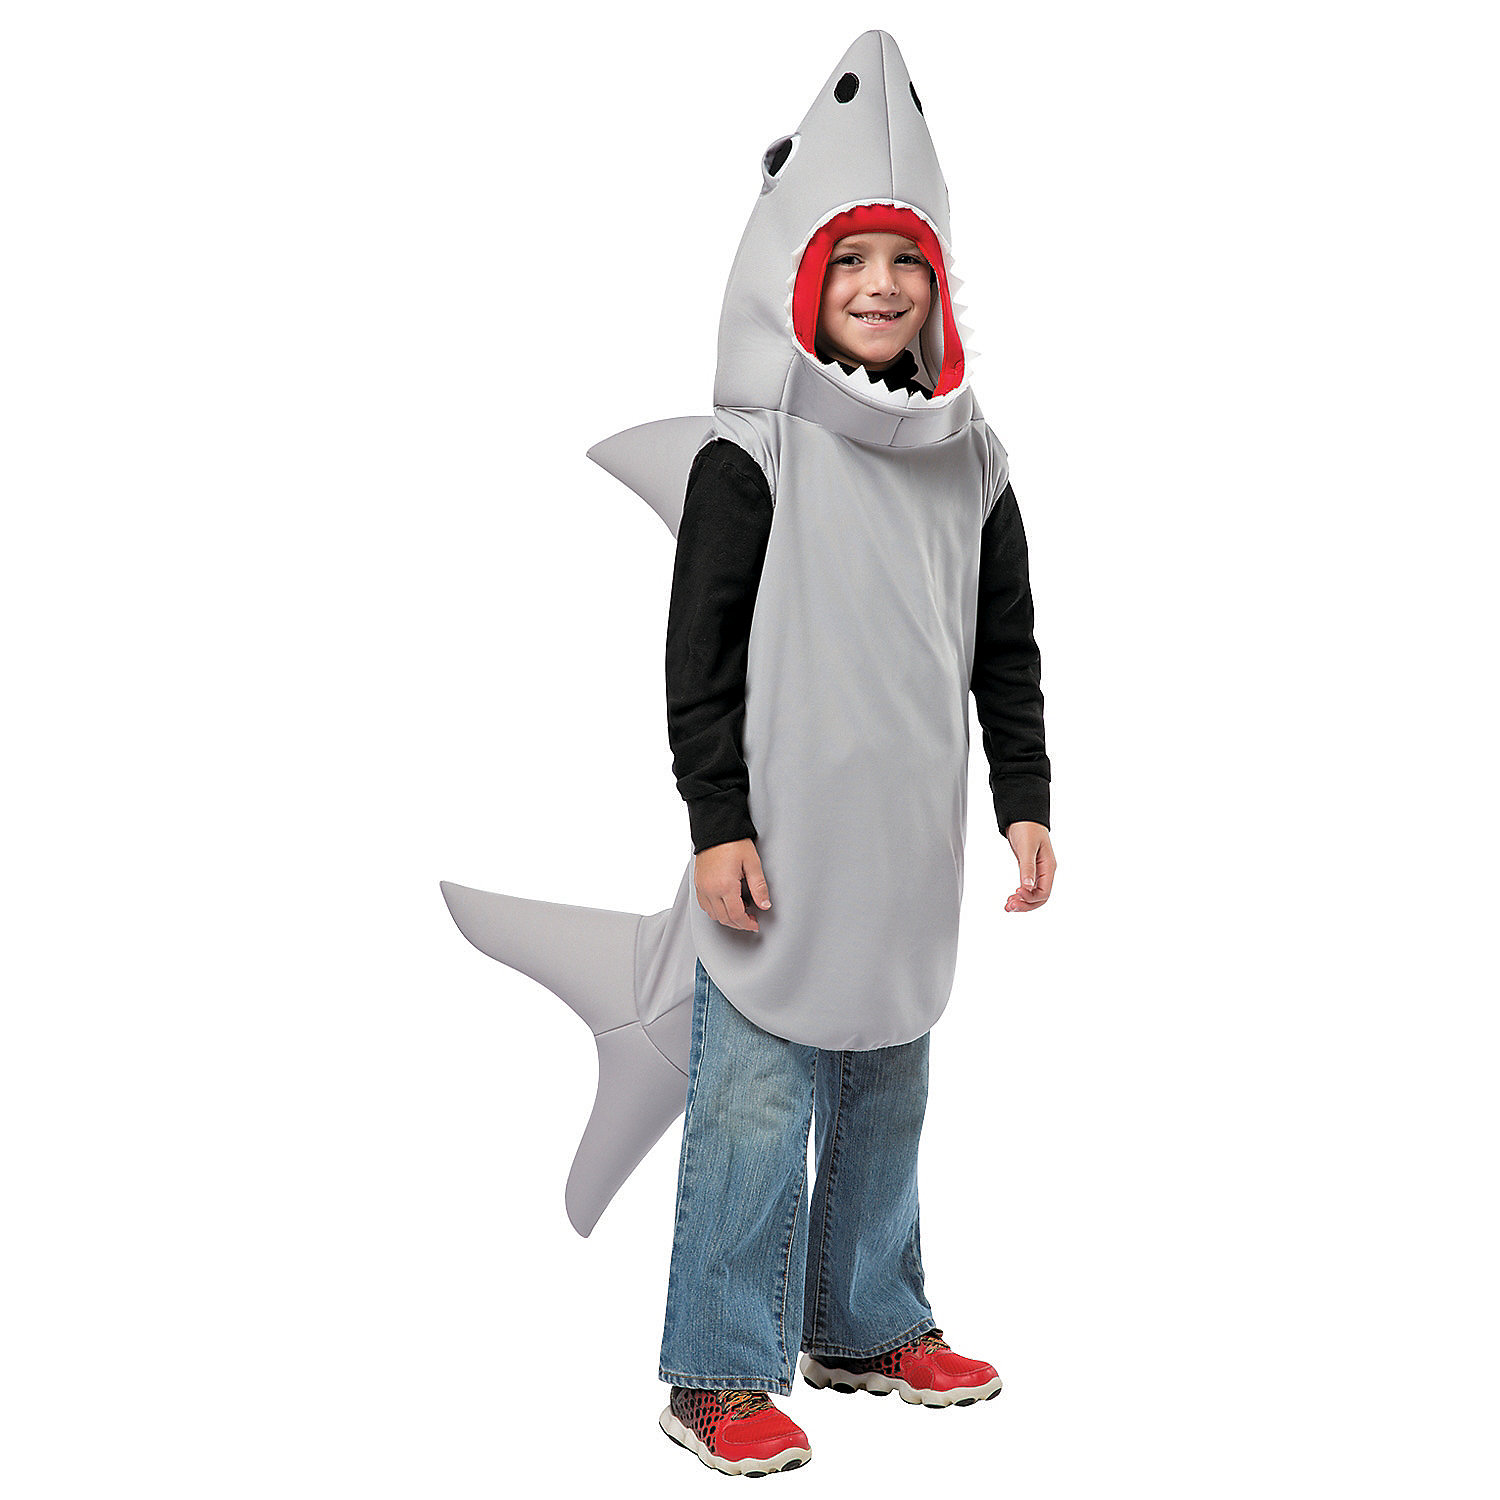 Shark Toys For Adults : Sand shark costume for adults men s costumes halloween